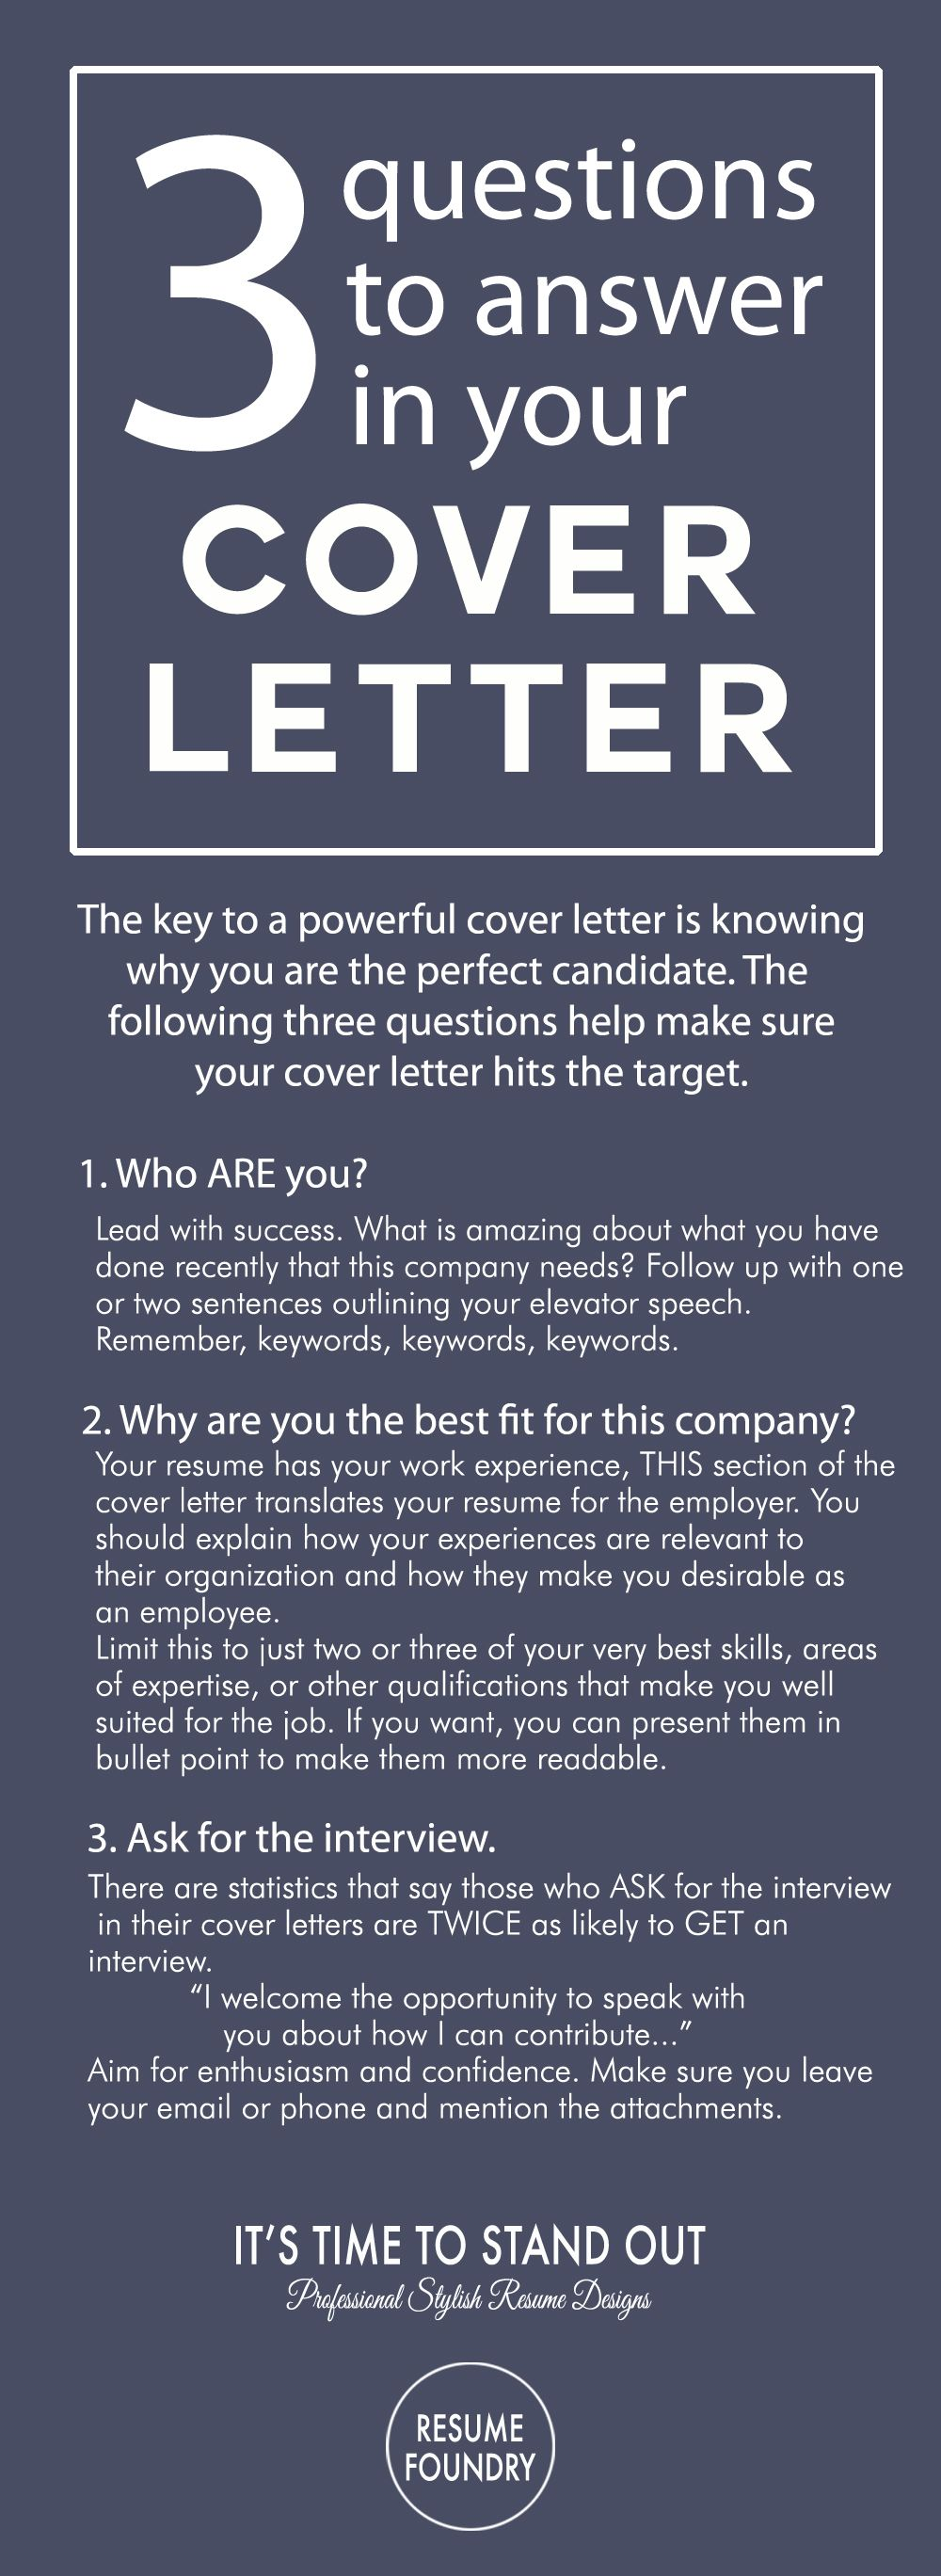 Cover Letter Outline, Cover Letter Tips | Resume | Pinterest ...